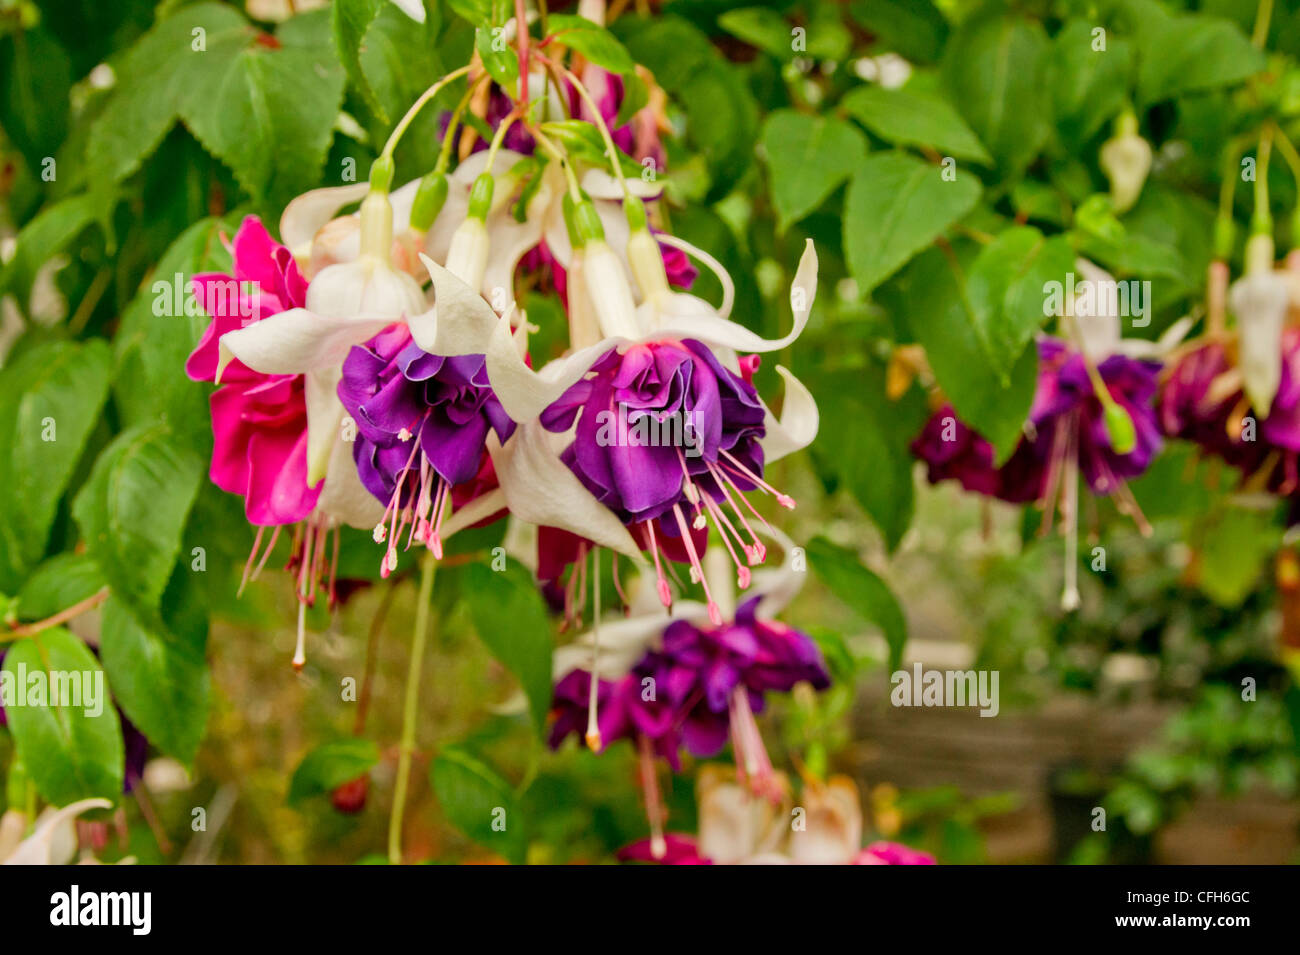 Hanging fuchsia with large double flowers in pink and purple stock hanging fuchsia with large double flowers in pink and purple mightylinksfo